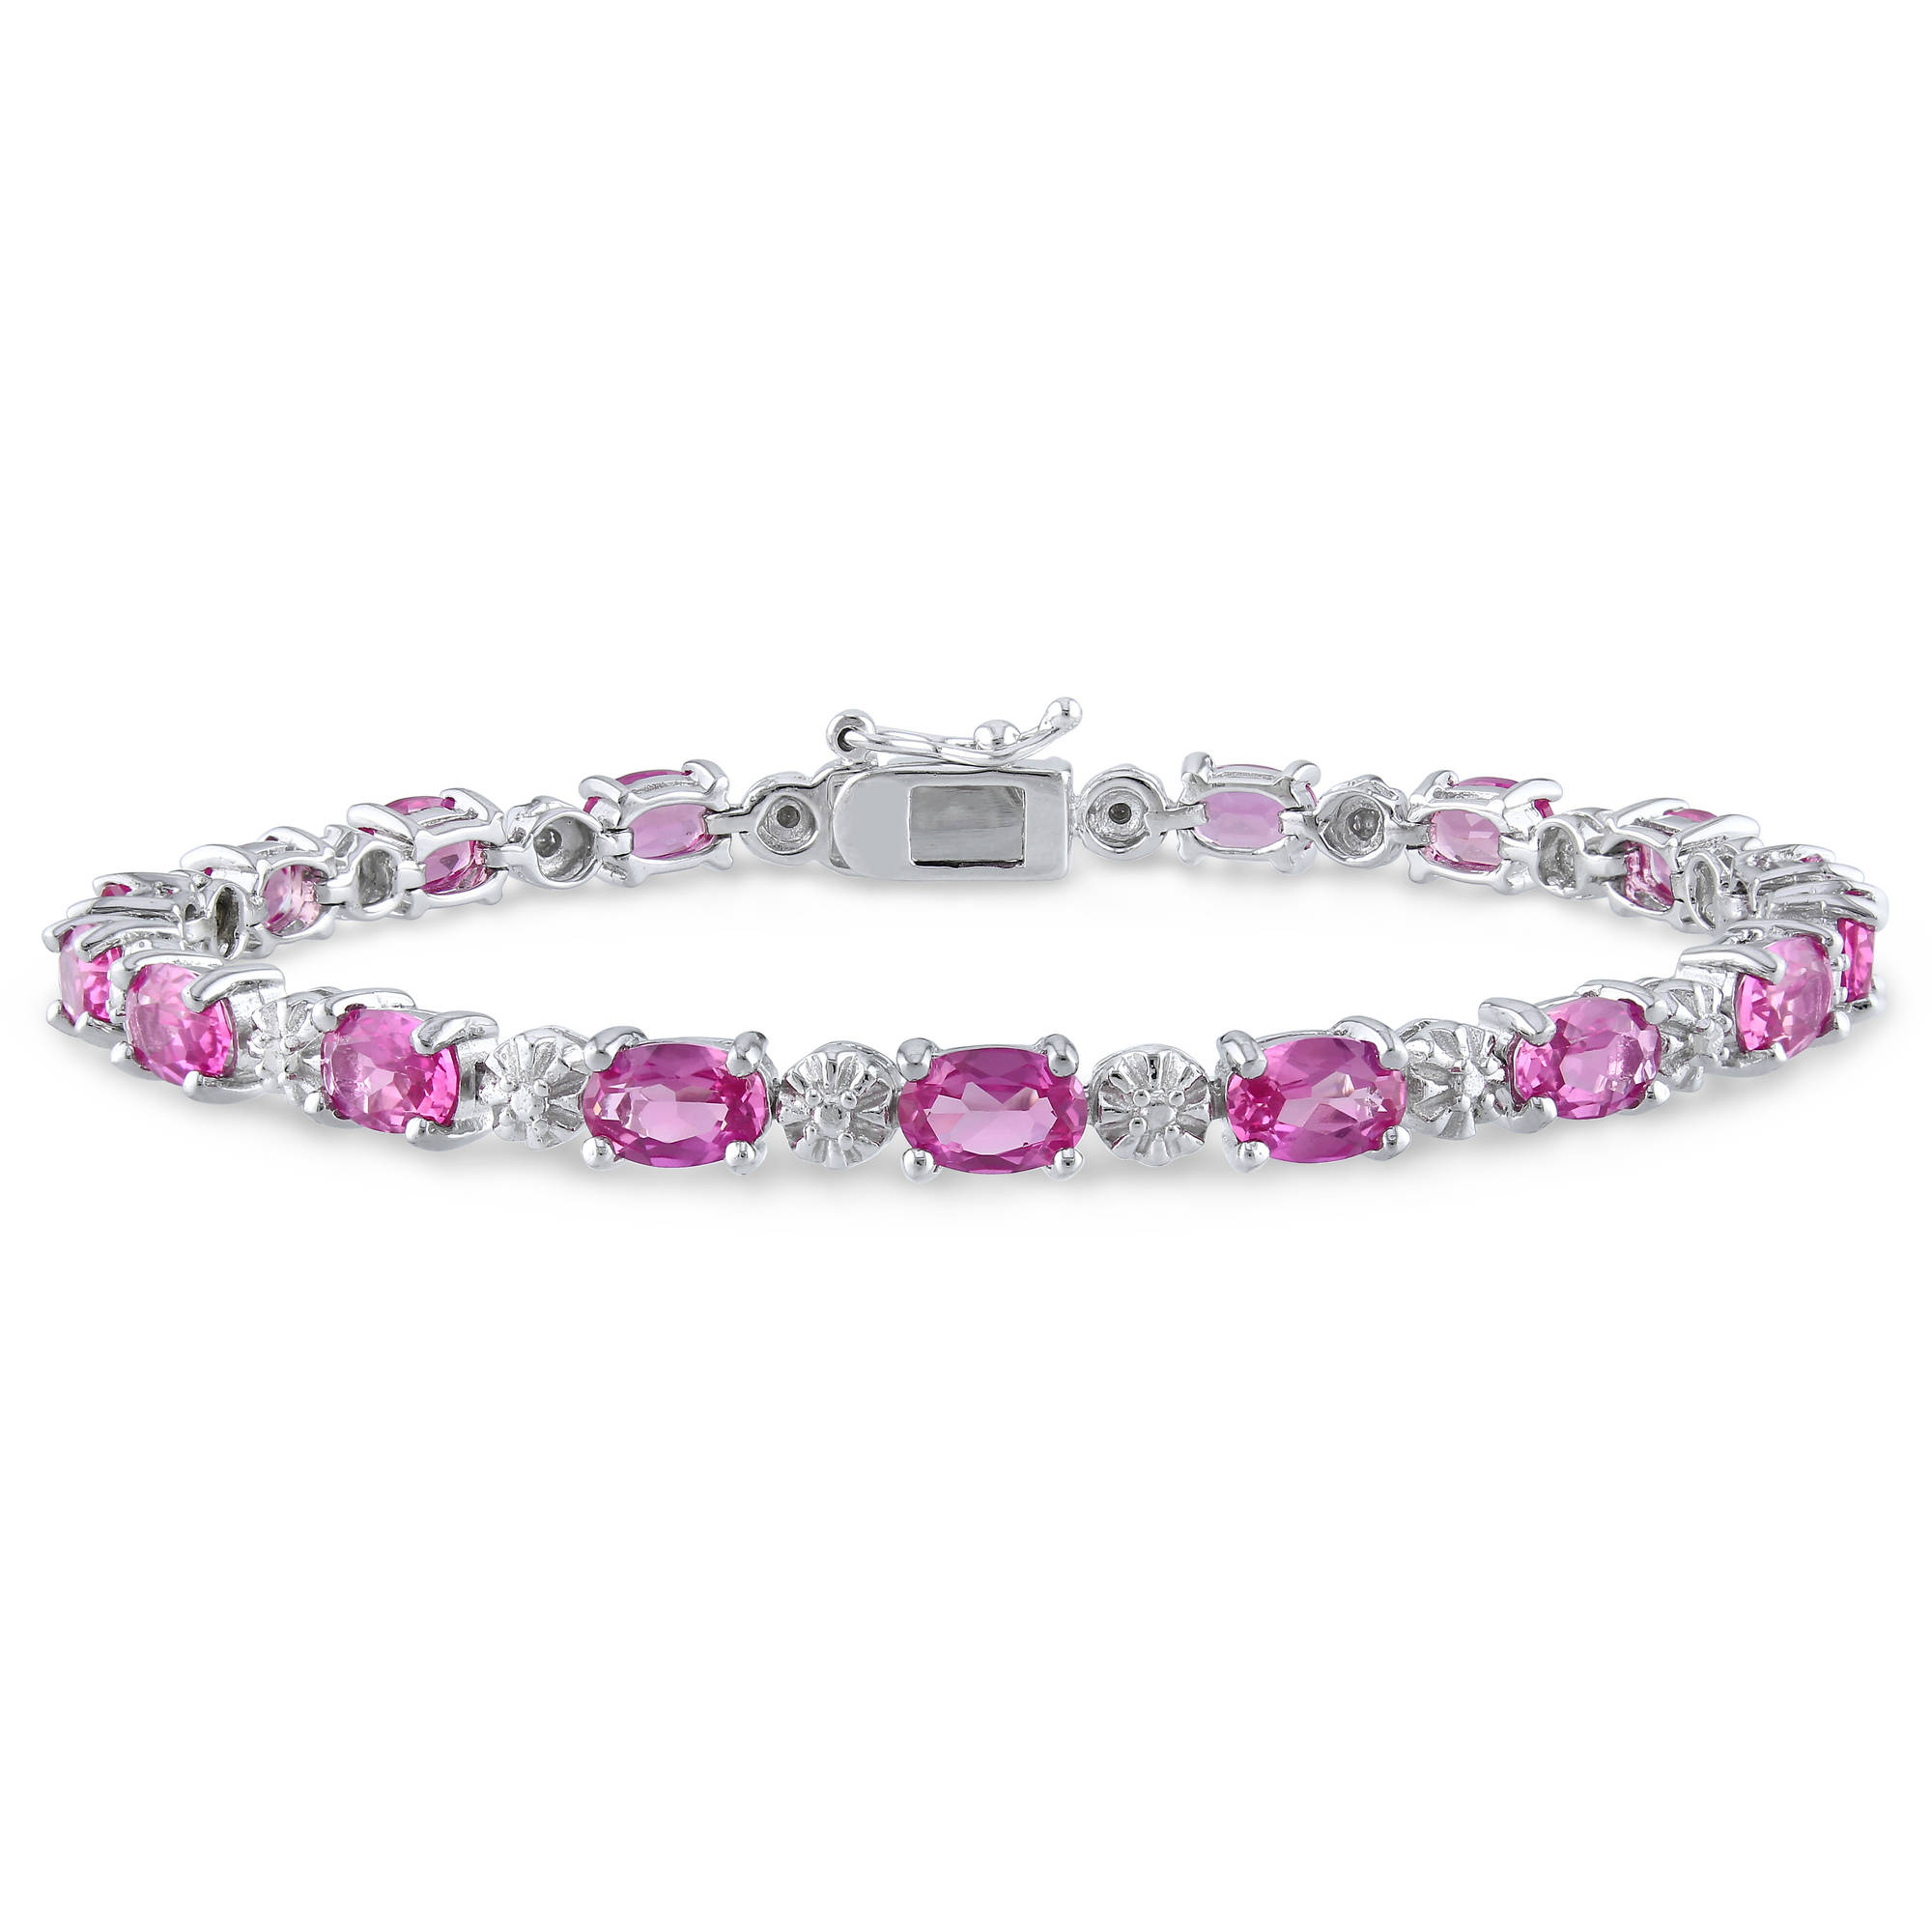 "13-1 2 Carat T.G.W. Oval-Cut Created Pink Sapphire and Diamond-Accent Sterling Silver Tennis Bracelet, 7.25"" by Delmar Manufacturing LLC"